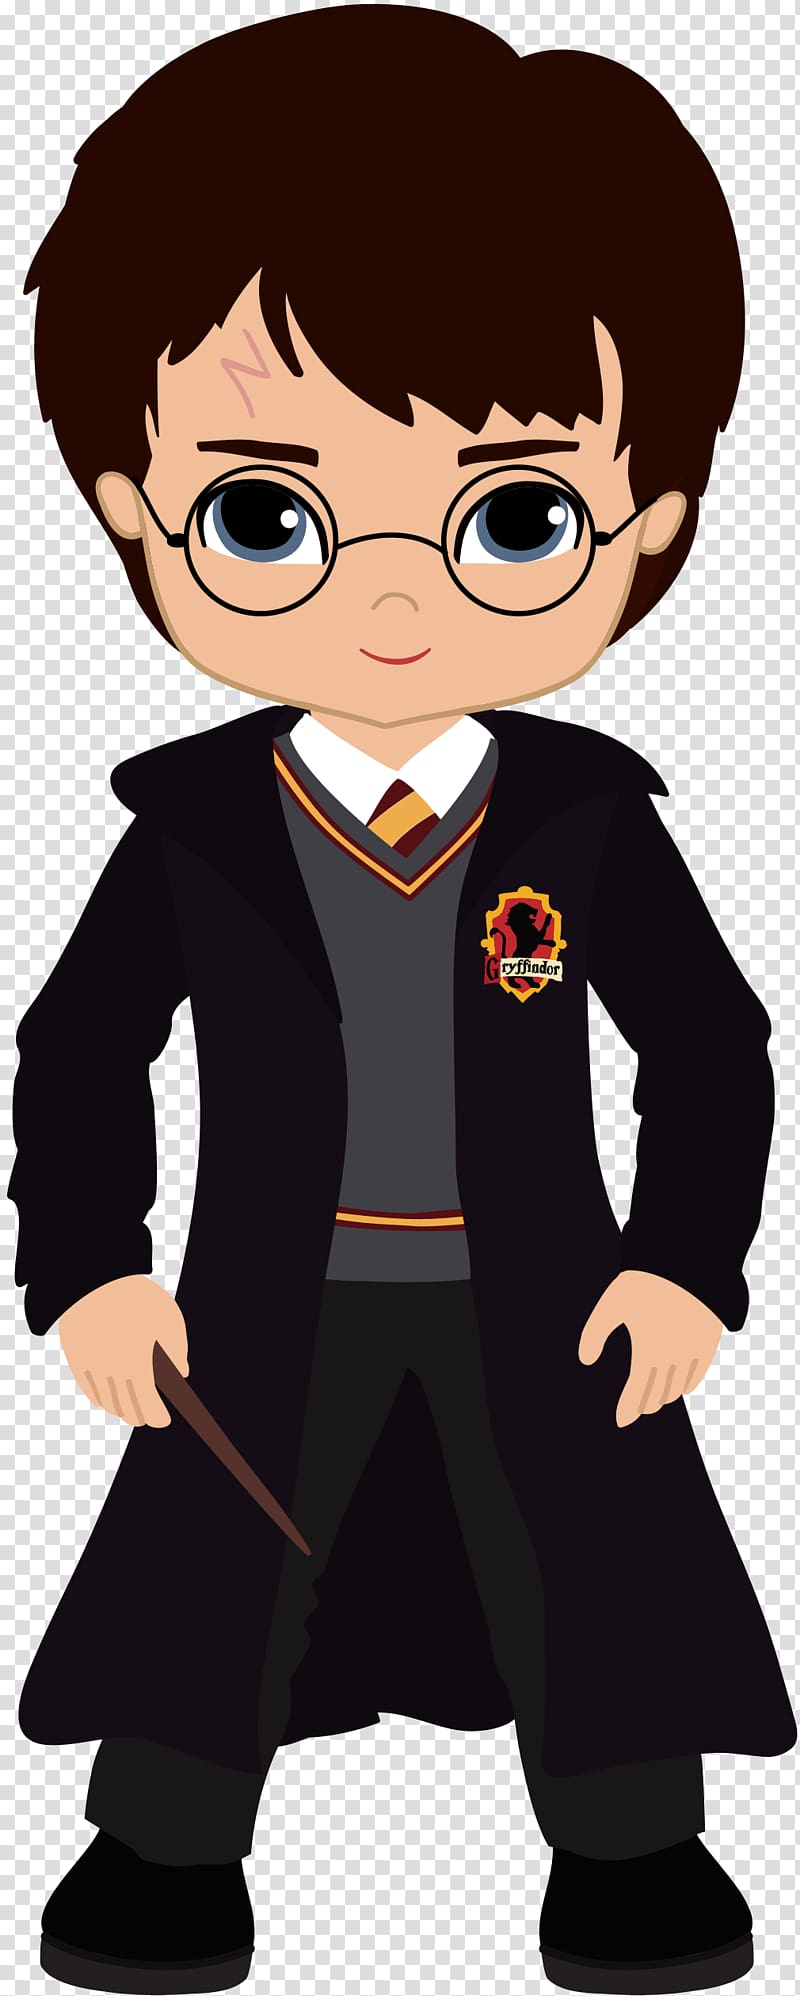 Harry Potter , Harry Potter , Harry Potter transparent.